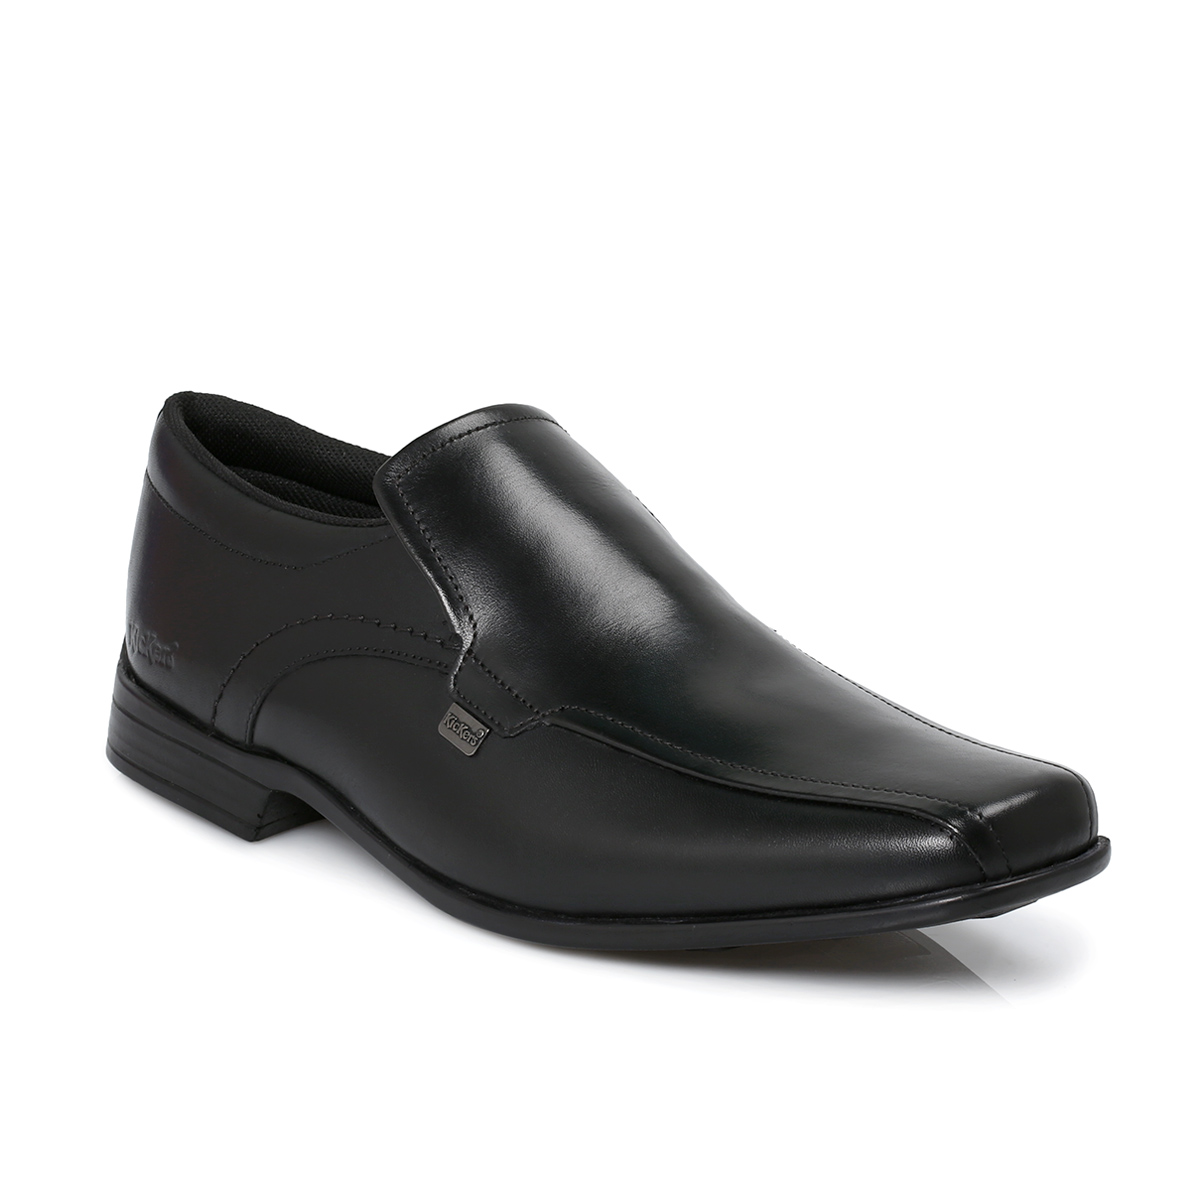 Kickers Ferock Black Slip On Shoes Mens Boys School Office ...